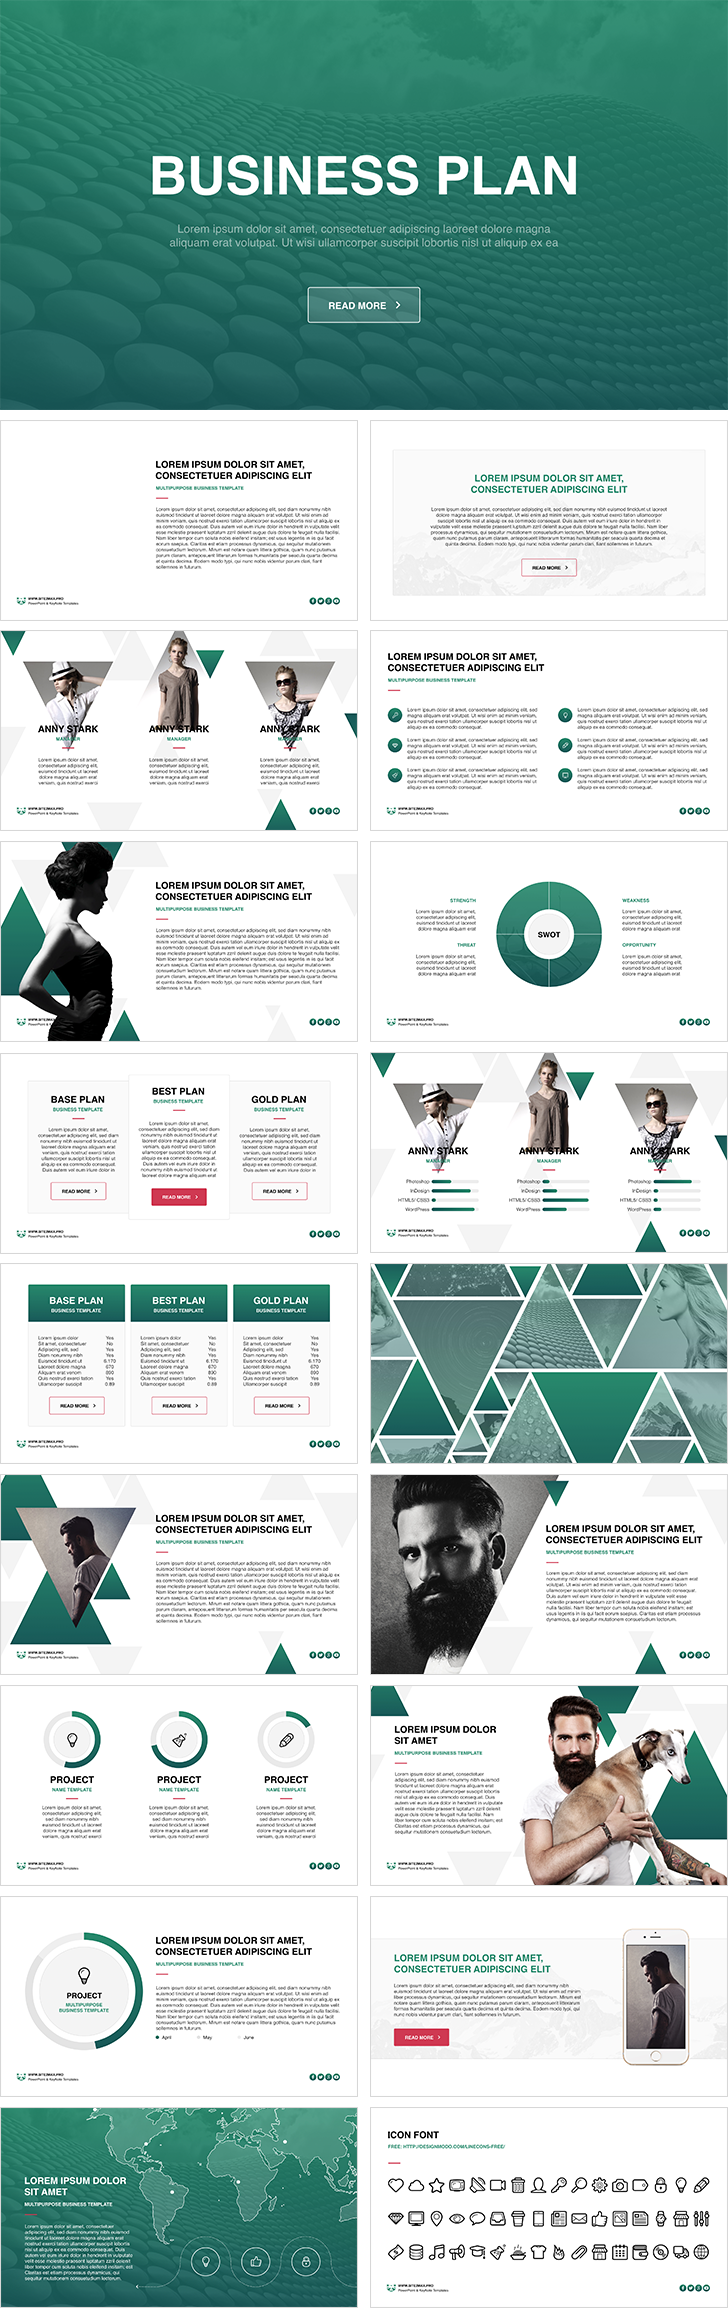 business plan free powerpoint template download free